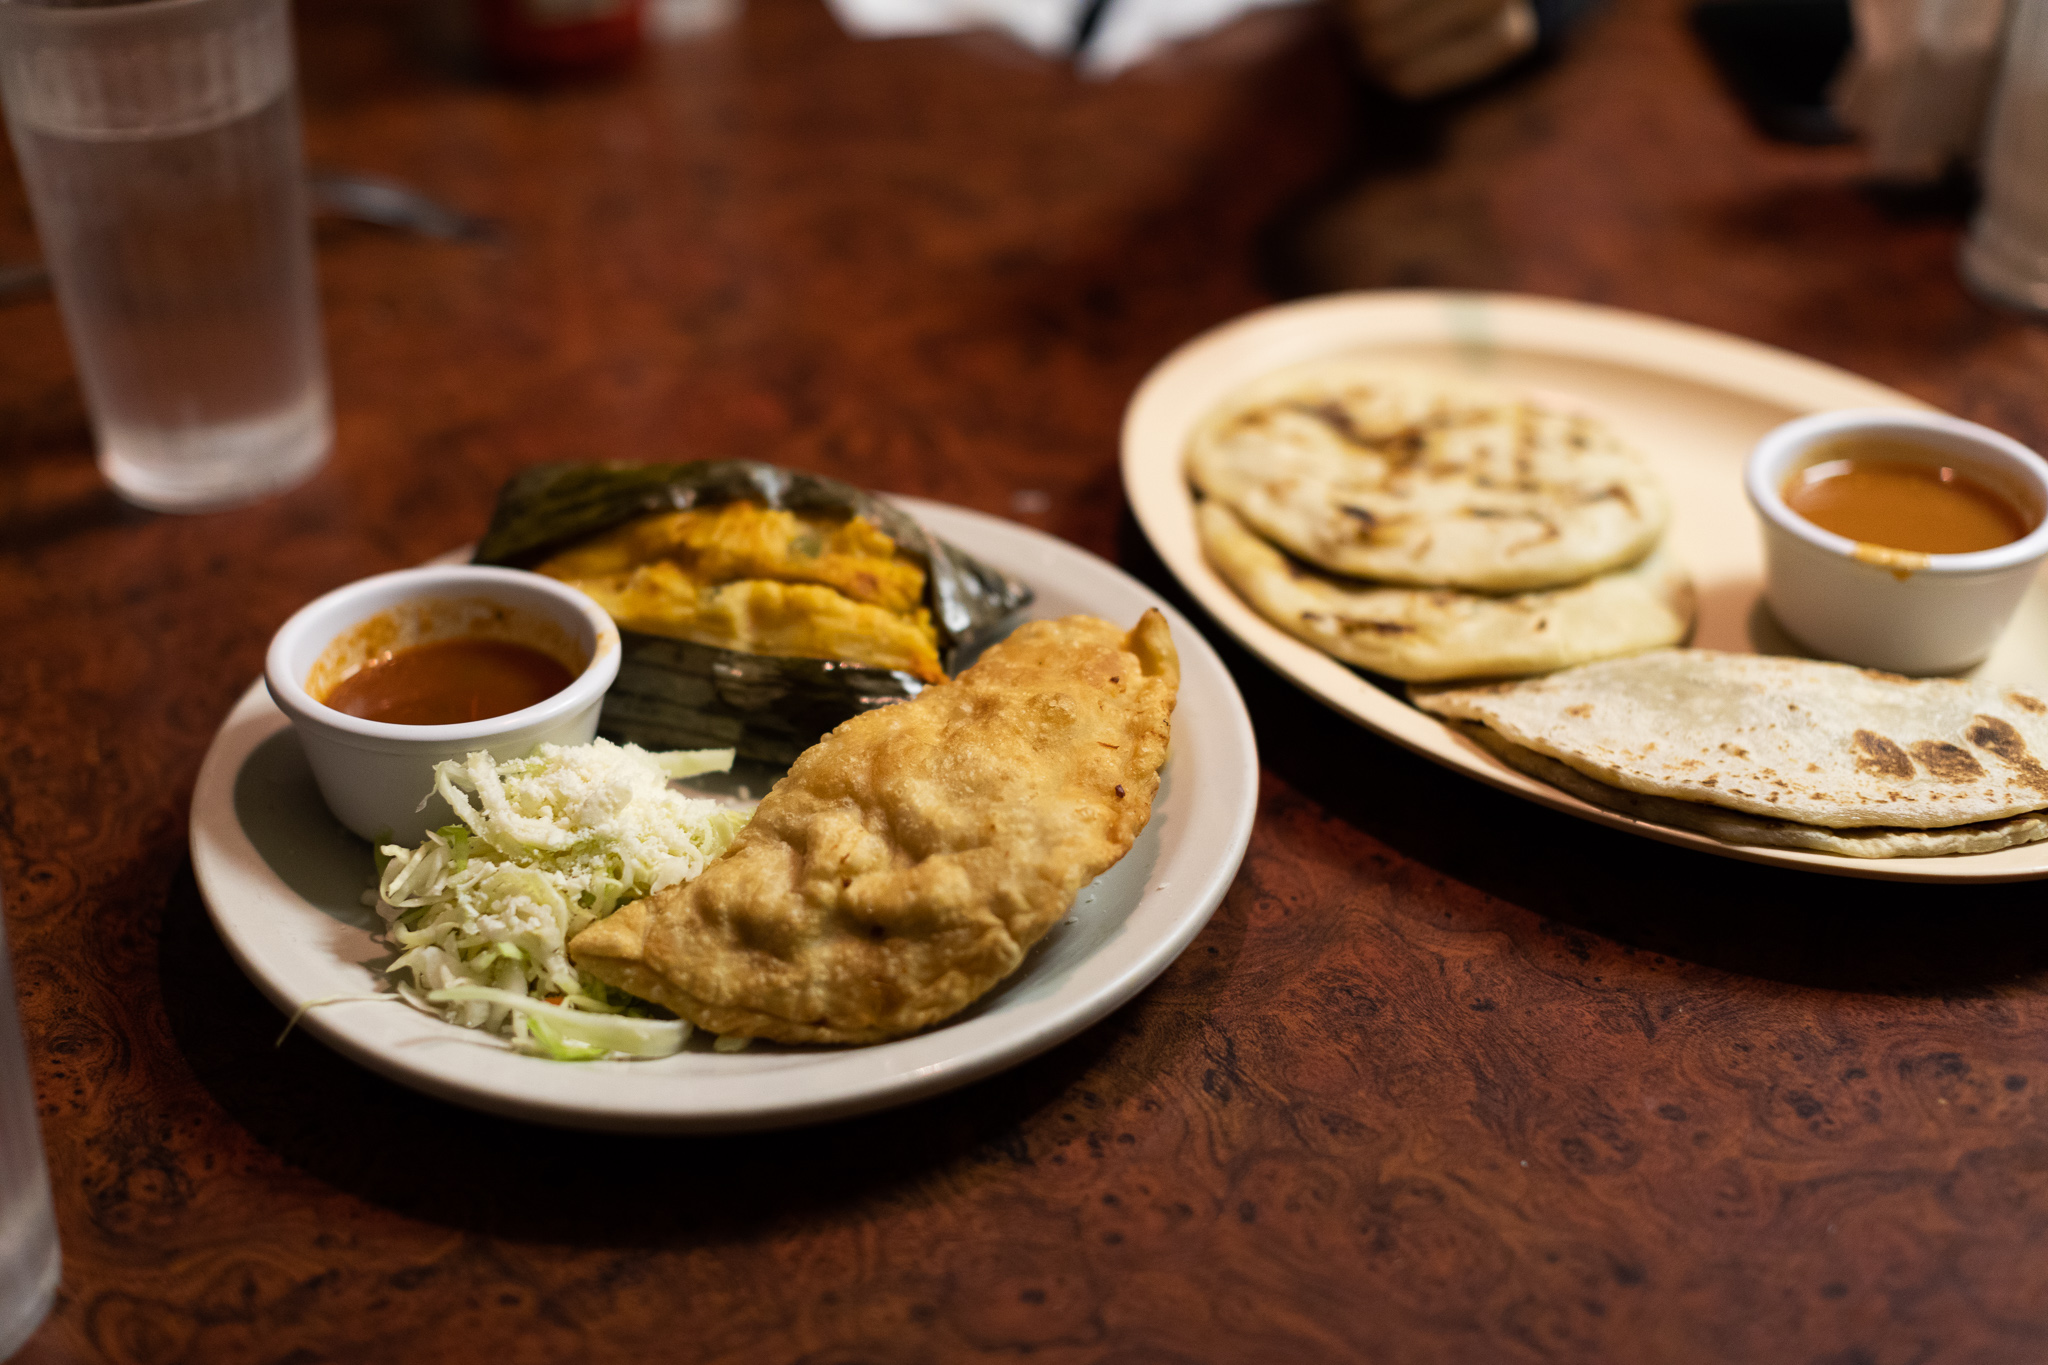 Tamales and pupusas on plates at Antojitos El Catracho.